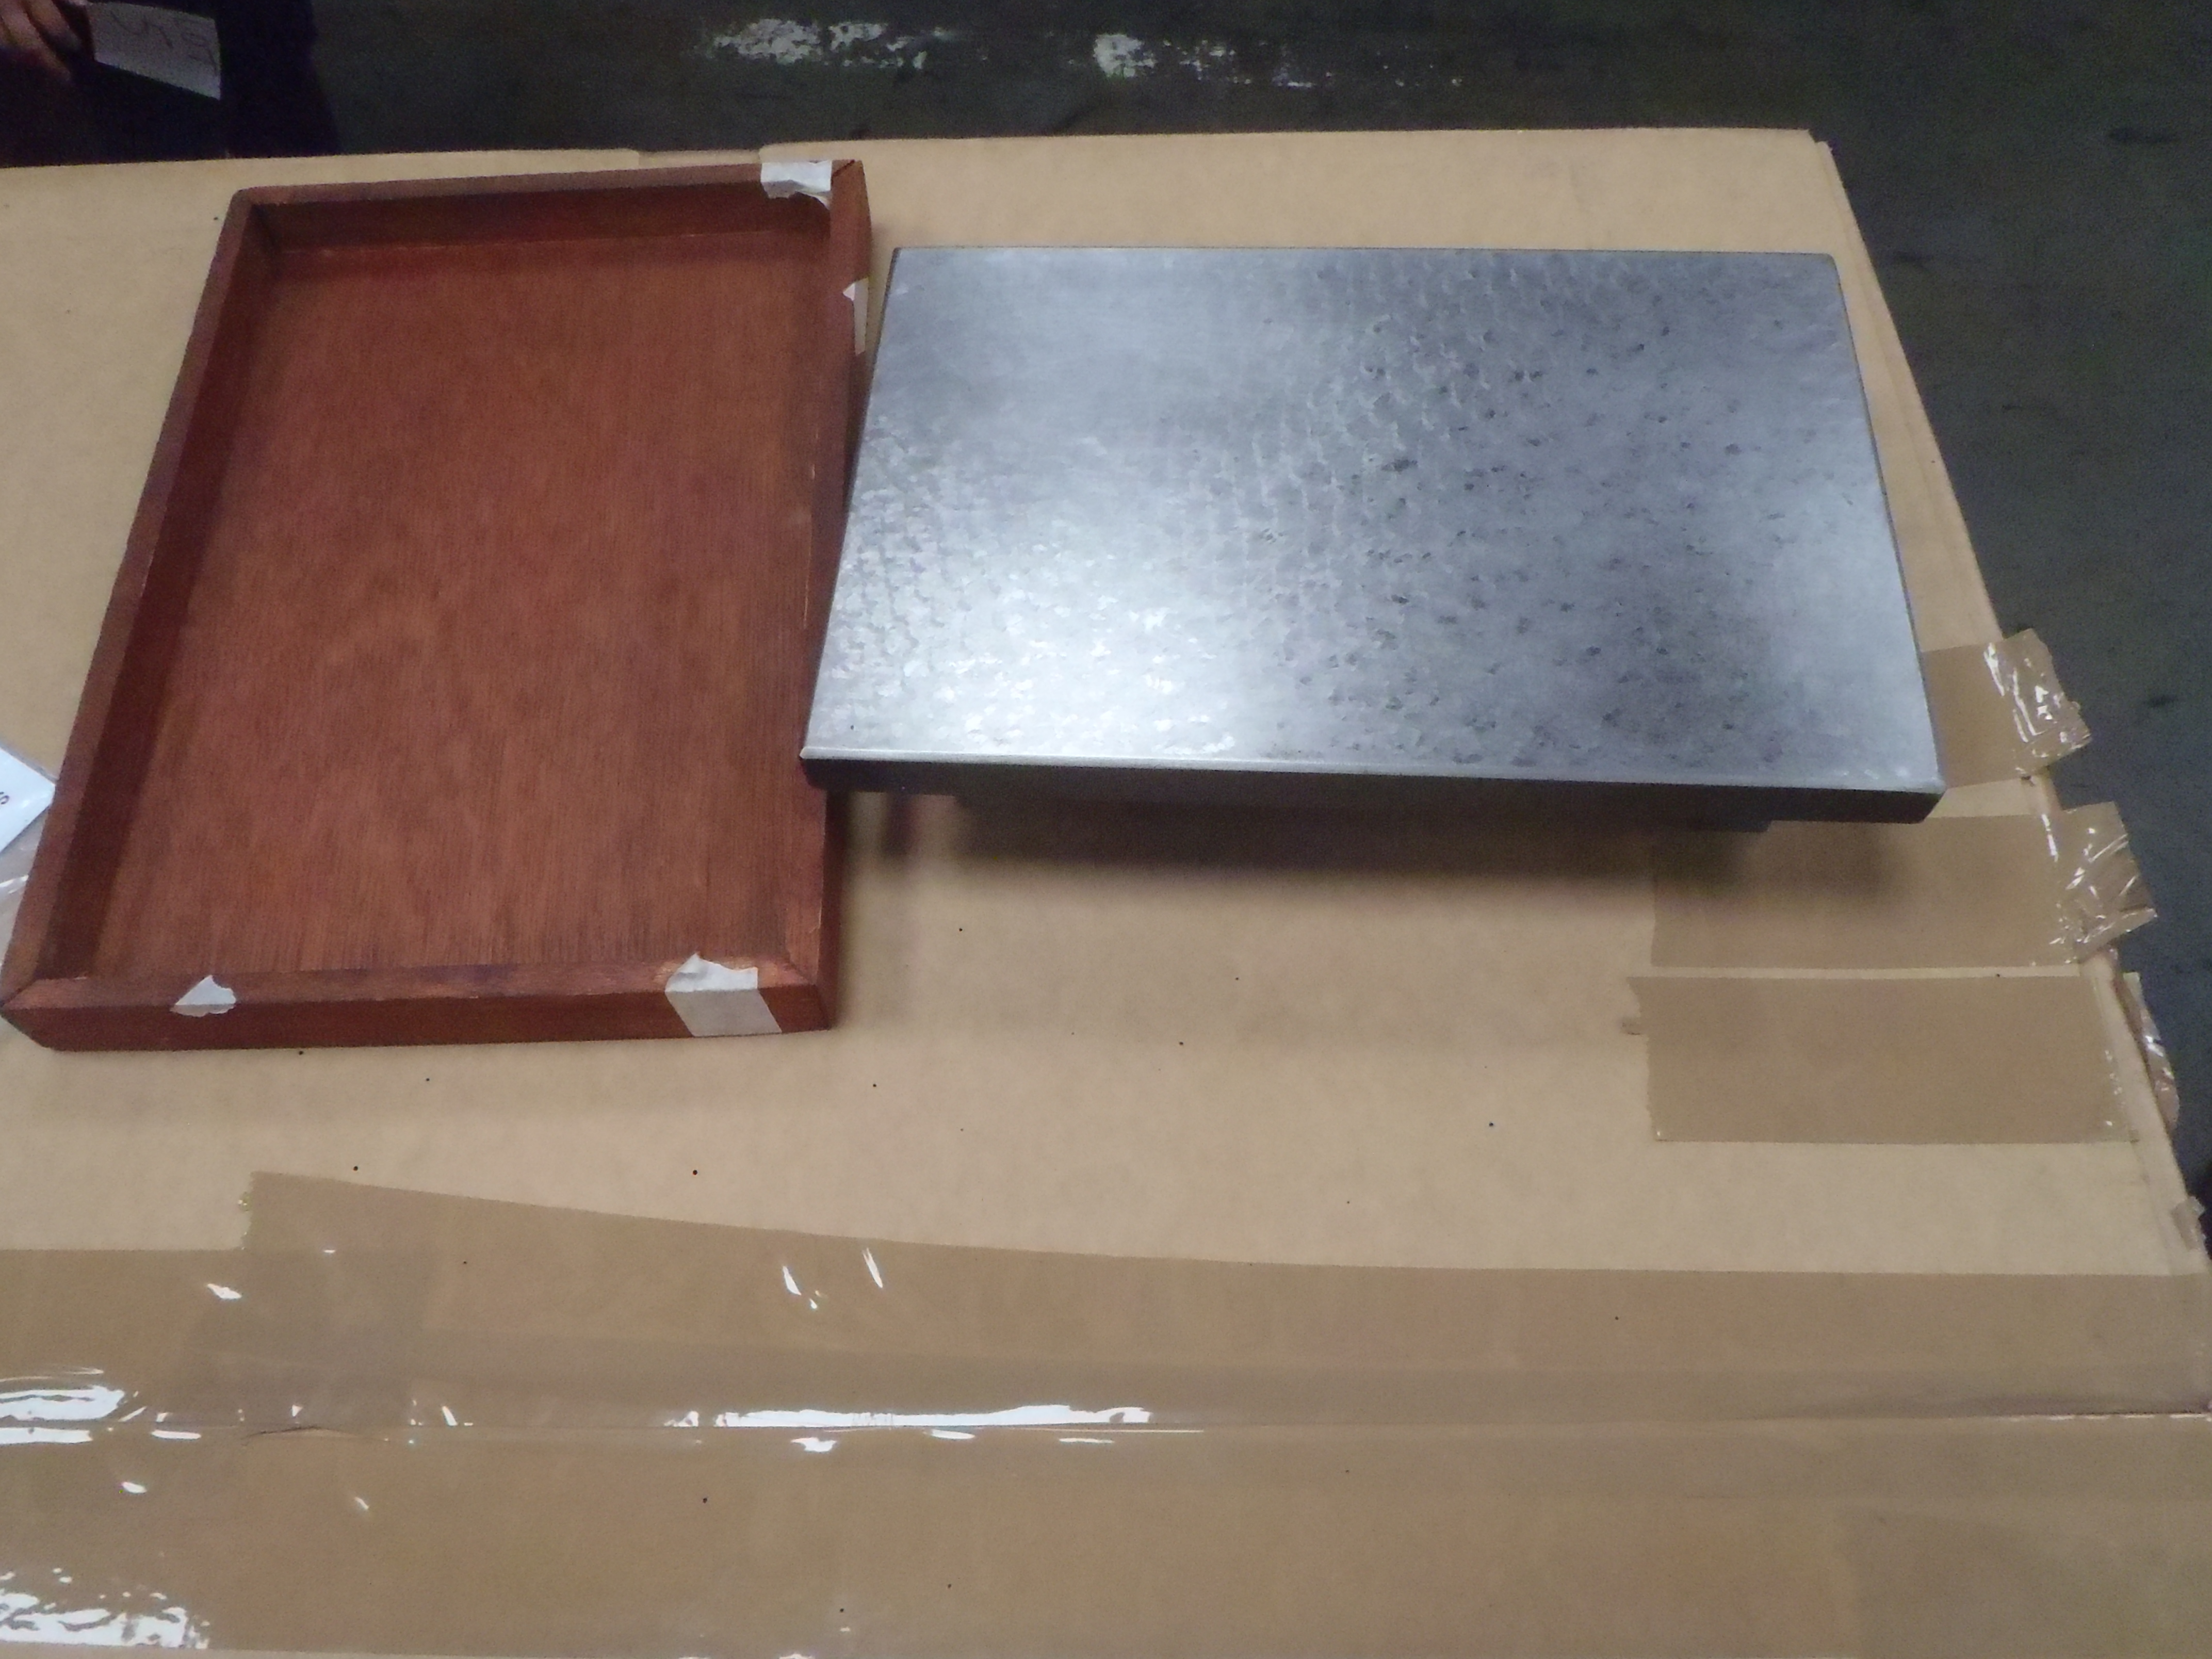 "Surface Plate with Cover - 12"" x 8"" - Used Condition"